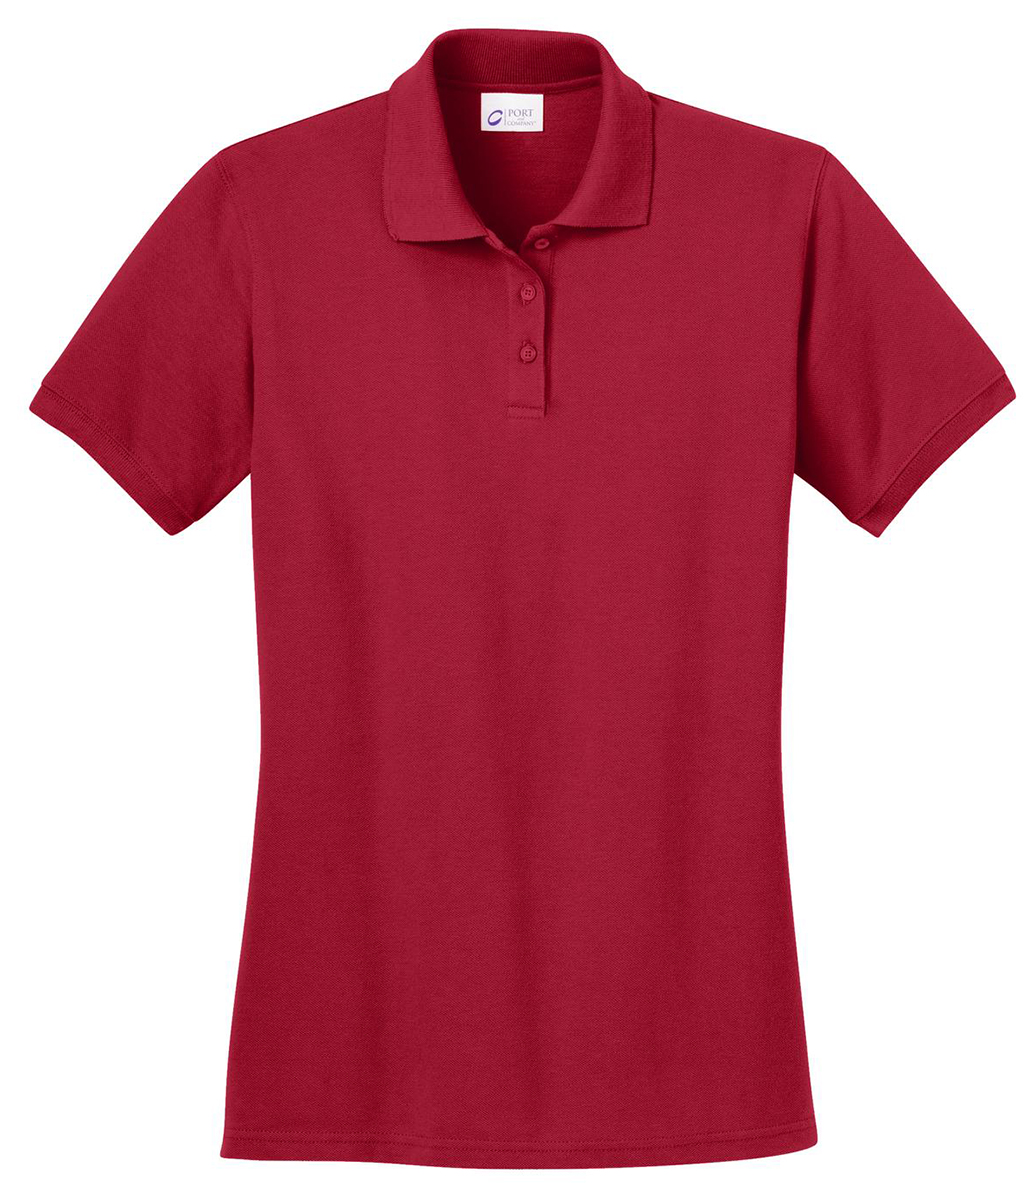 Port company women 39 s 100 cotton short sleeve golf polo for Ladies cotton golf shirts